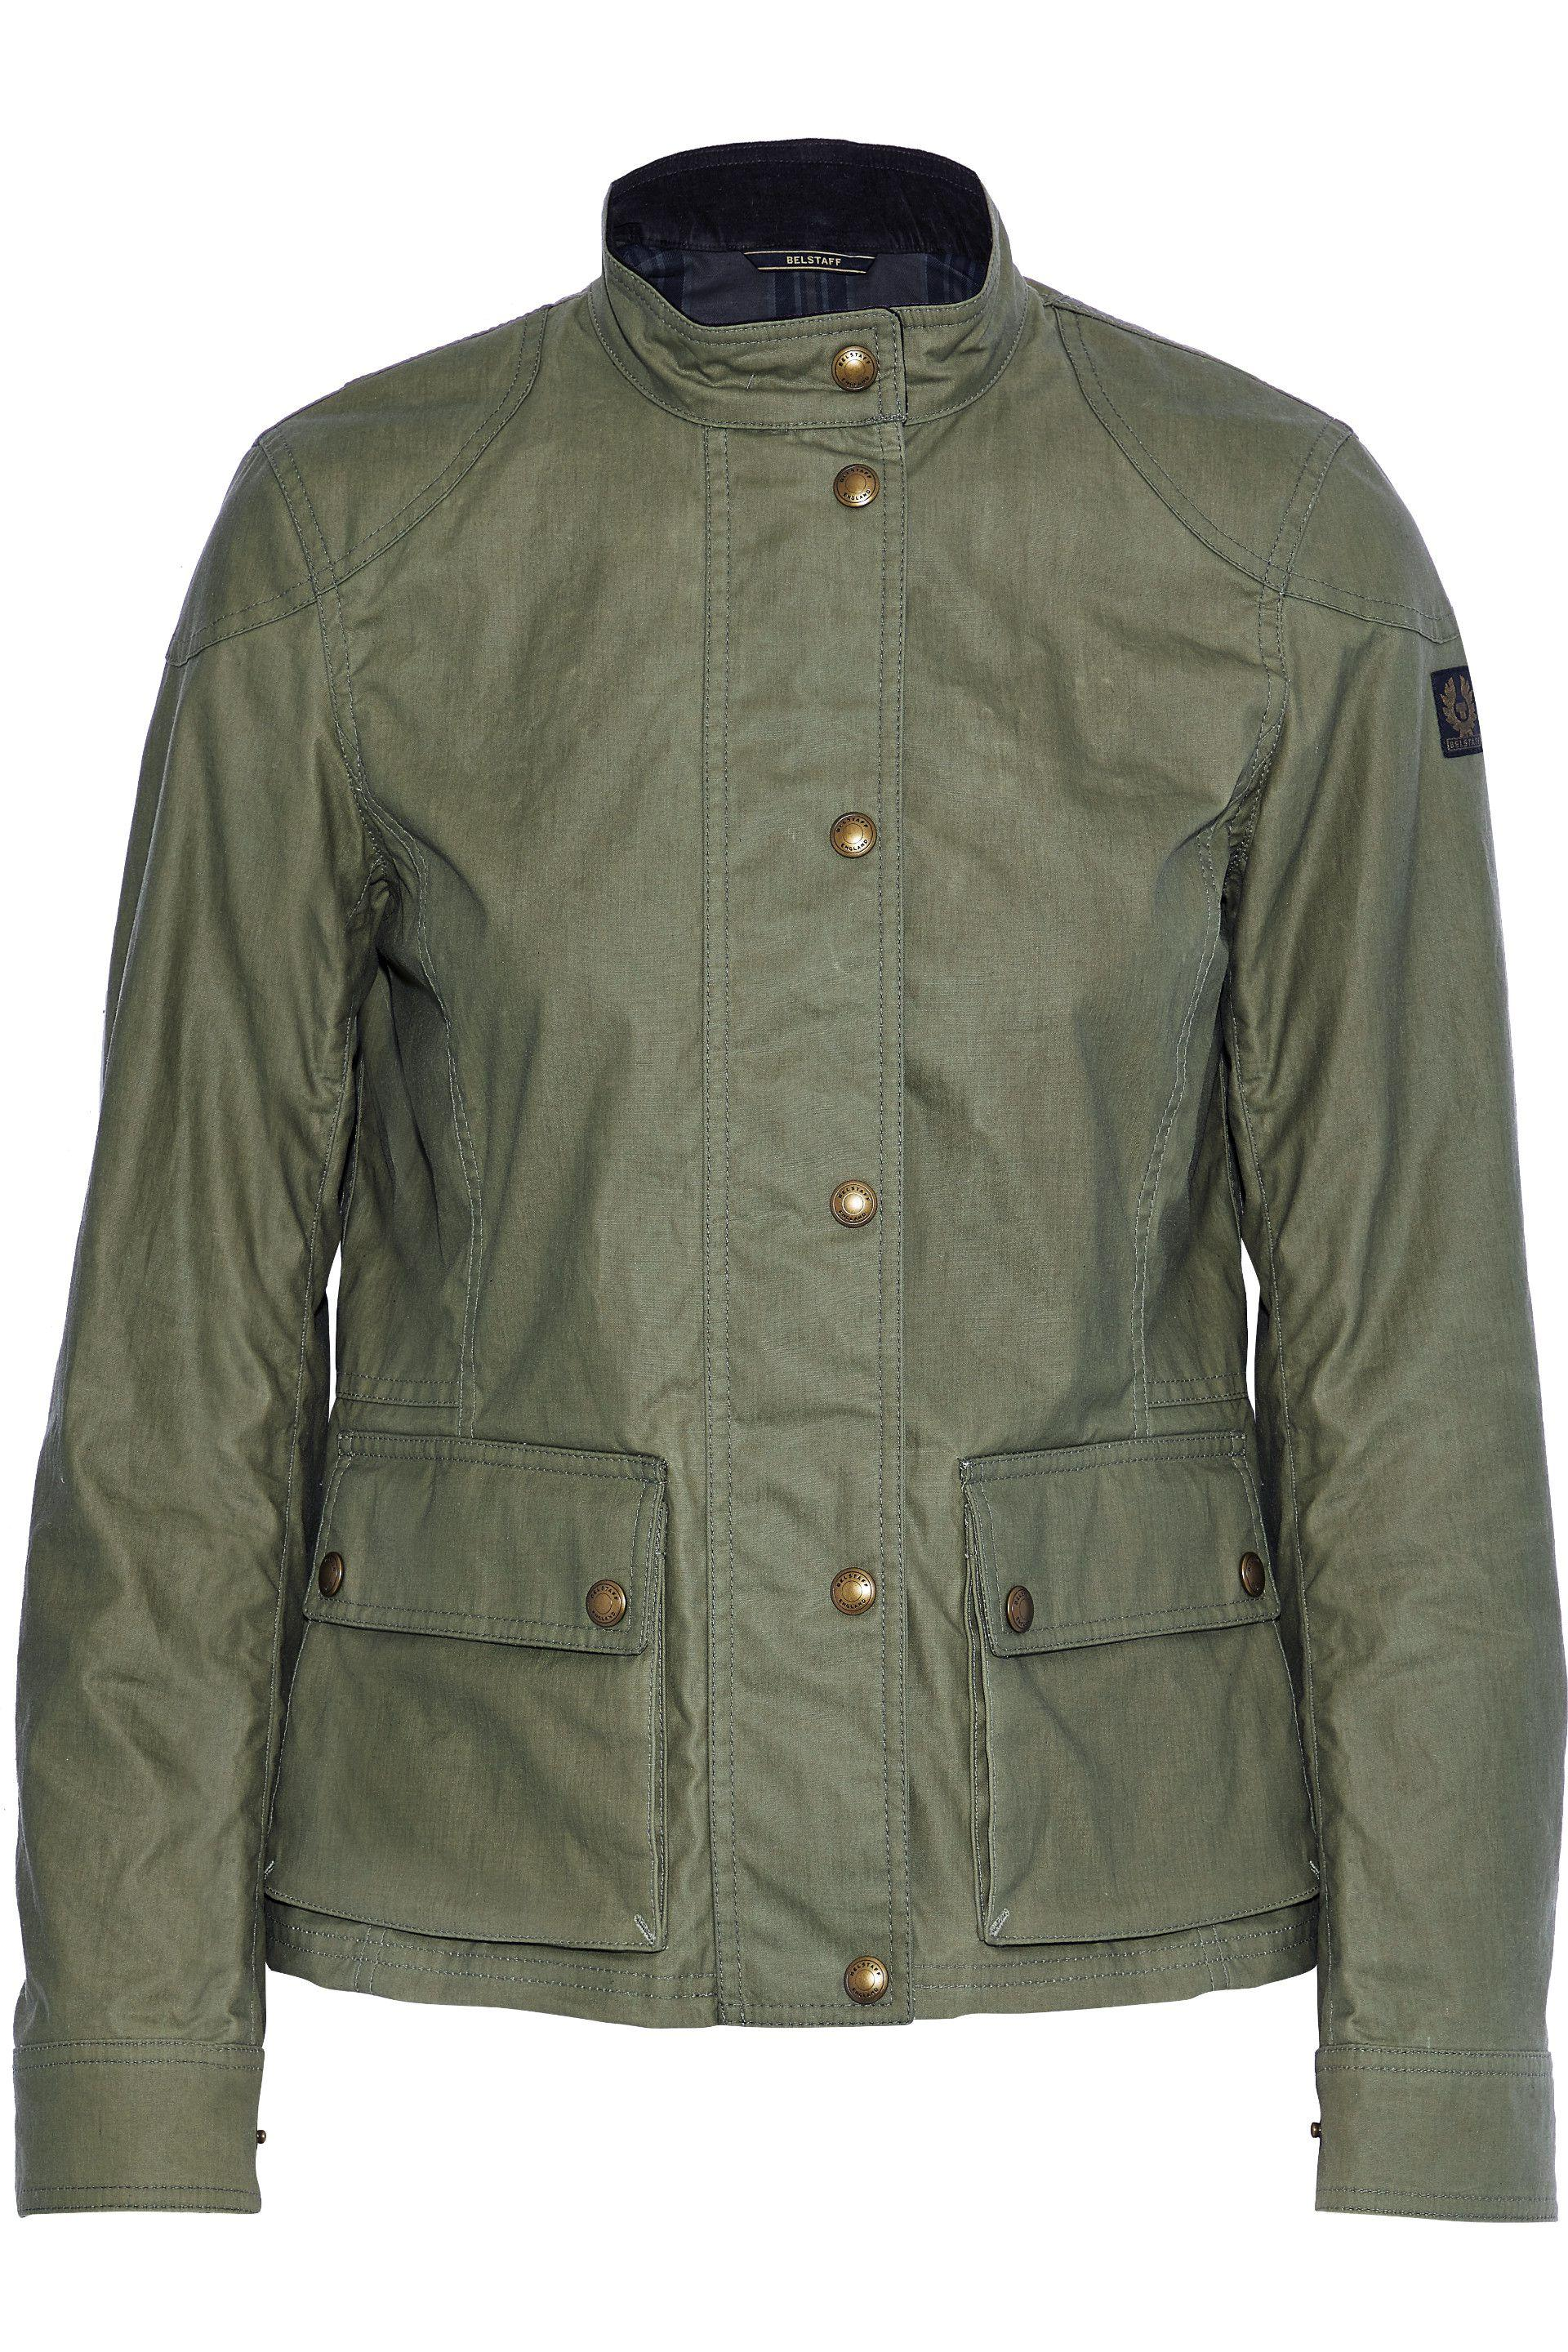 fc899026135b20 belstaff-Army-green-Woman-Longhan-Coated-cotton-Jacket-Army-Green.jpeg